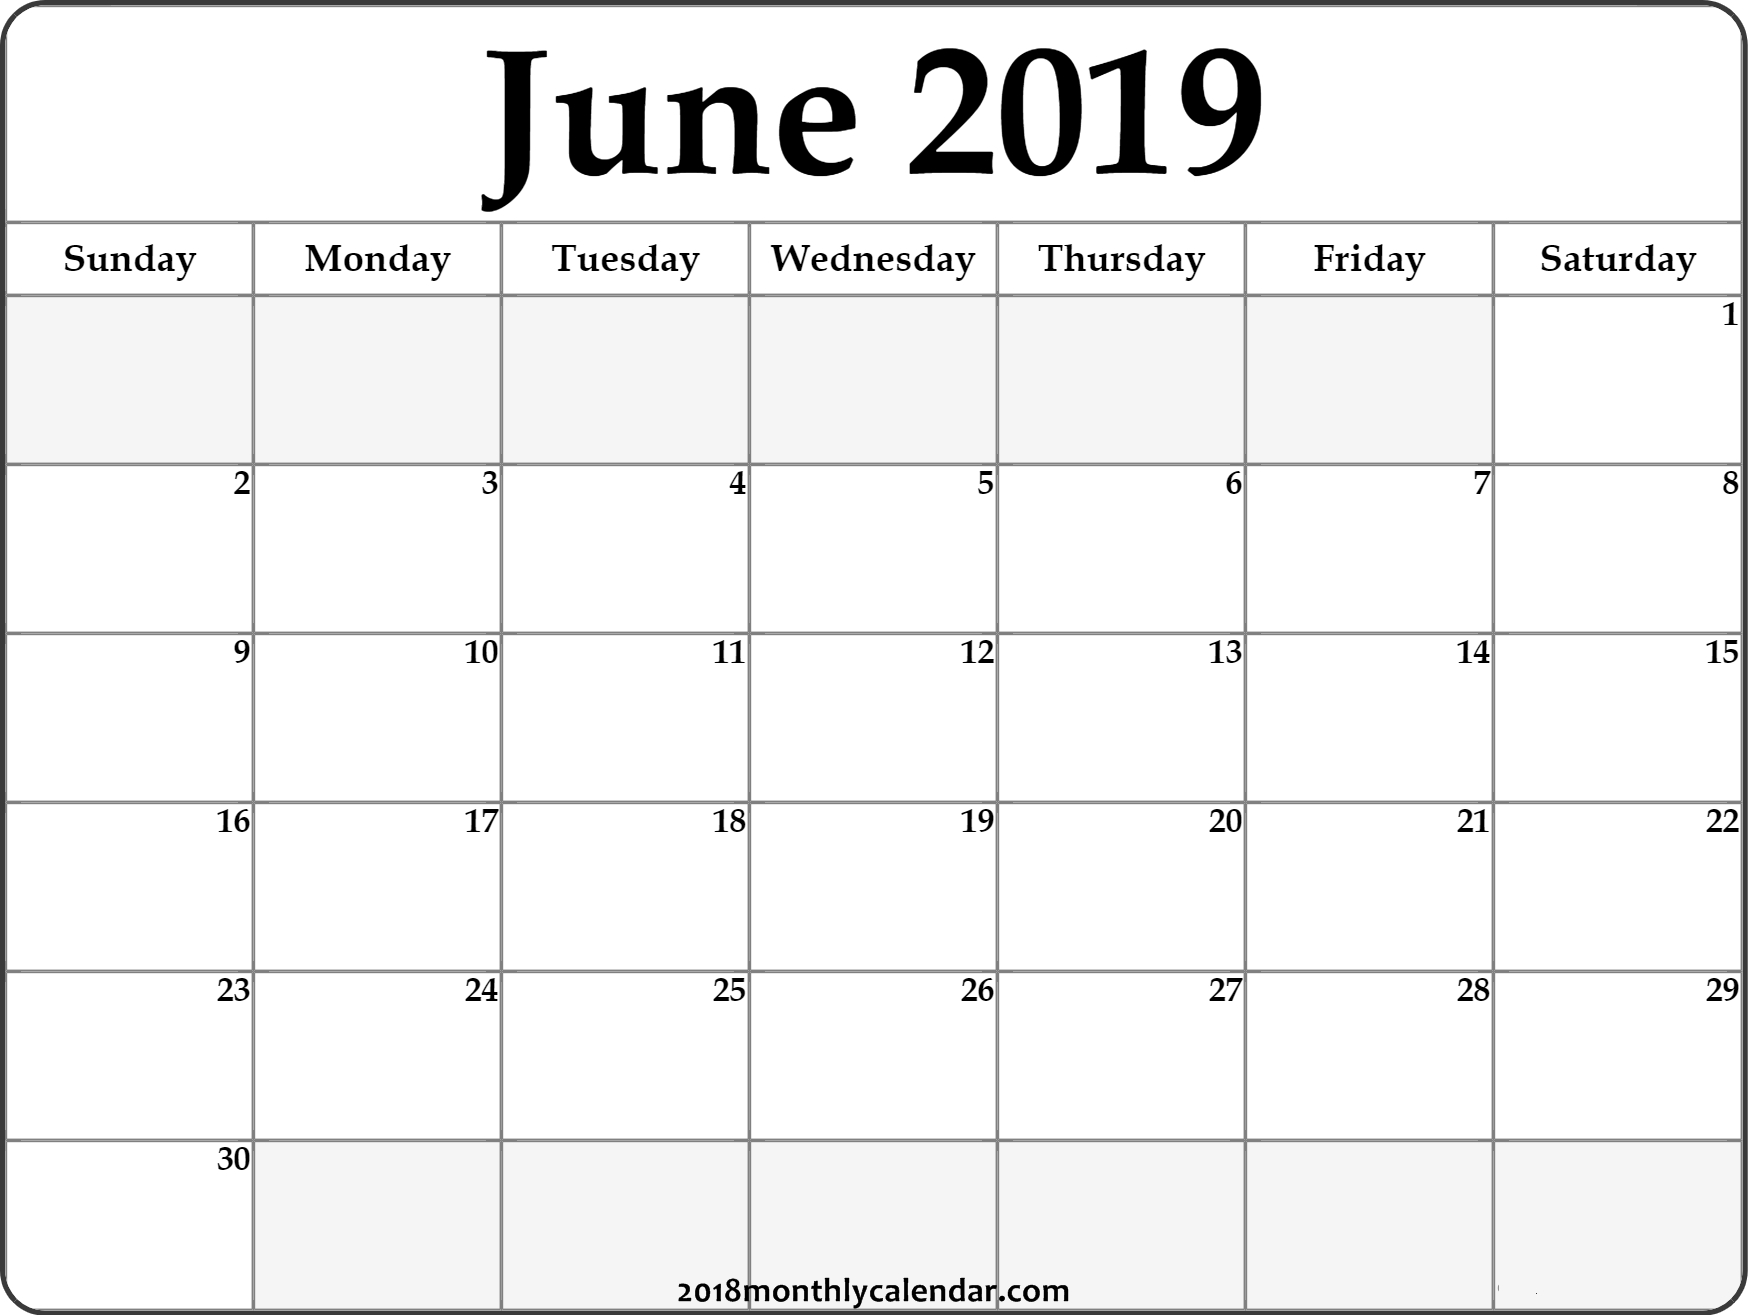 Download June 2019 Printable Calendar - Printable Blank & Editable Calendar 2019 June